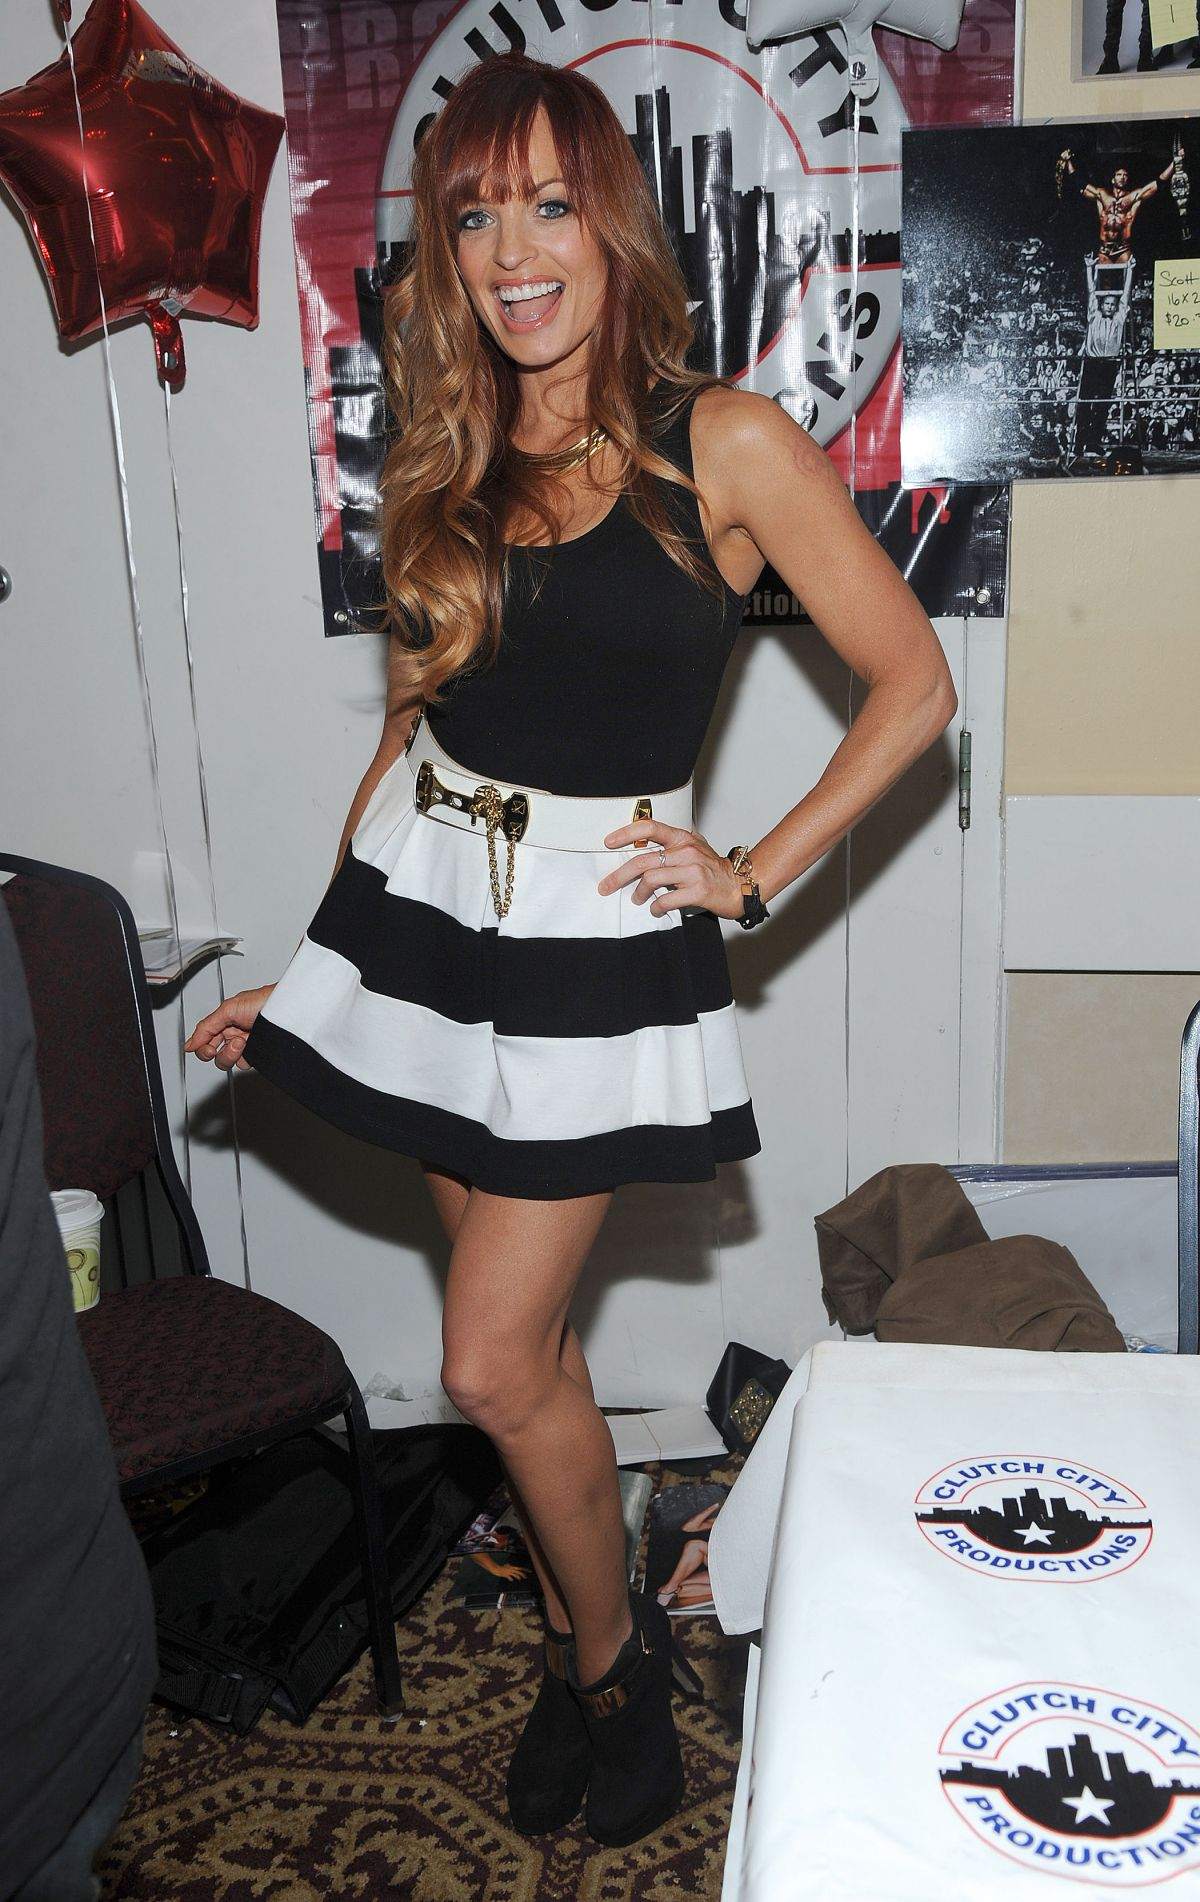 Celebrites Christy Hemme nude (52 foto and video), Ass, Paparazzi, Selfie, braless 2018